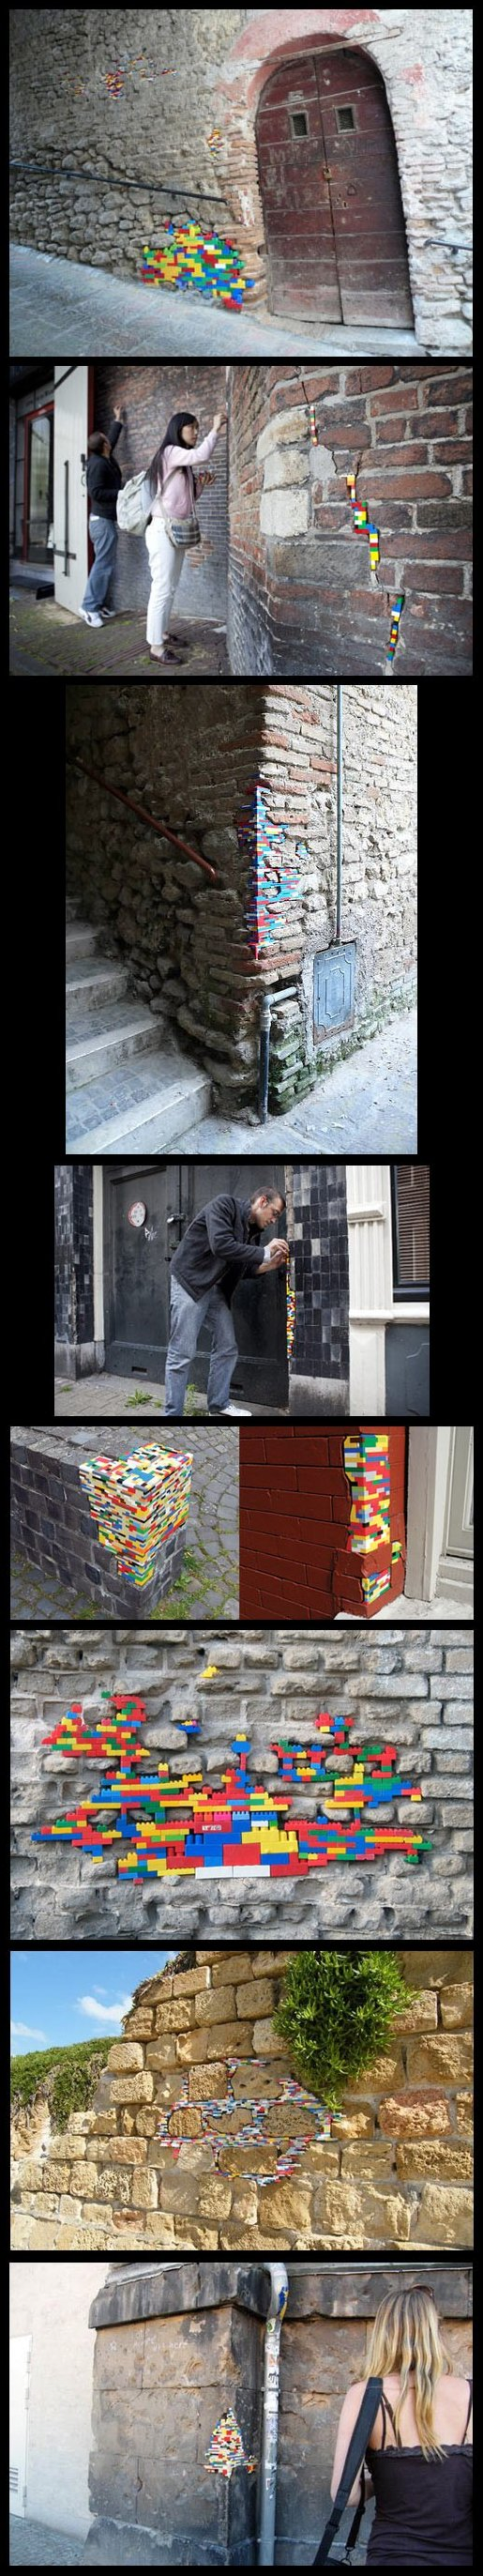 Patching up walls with LEGO